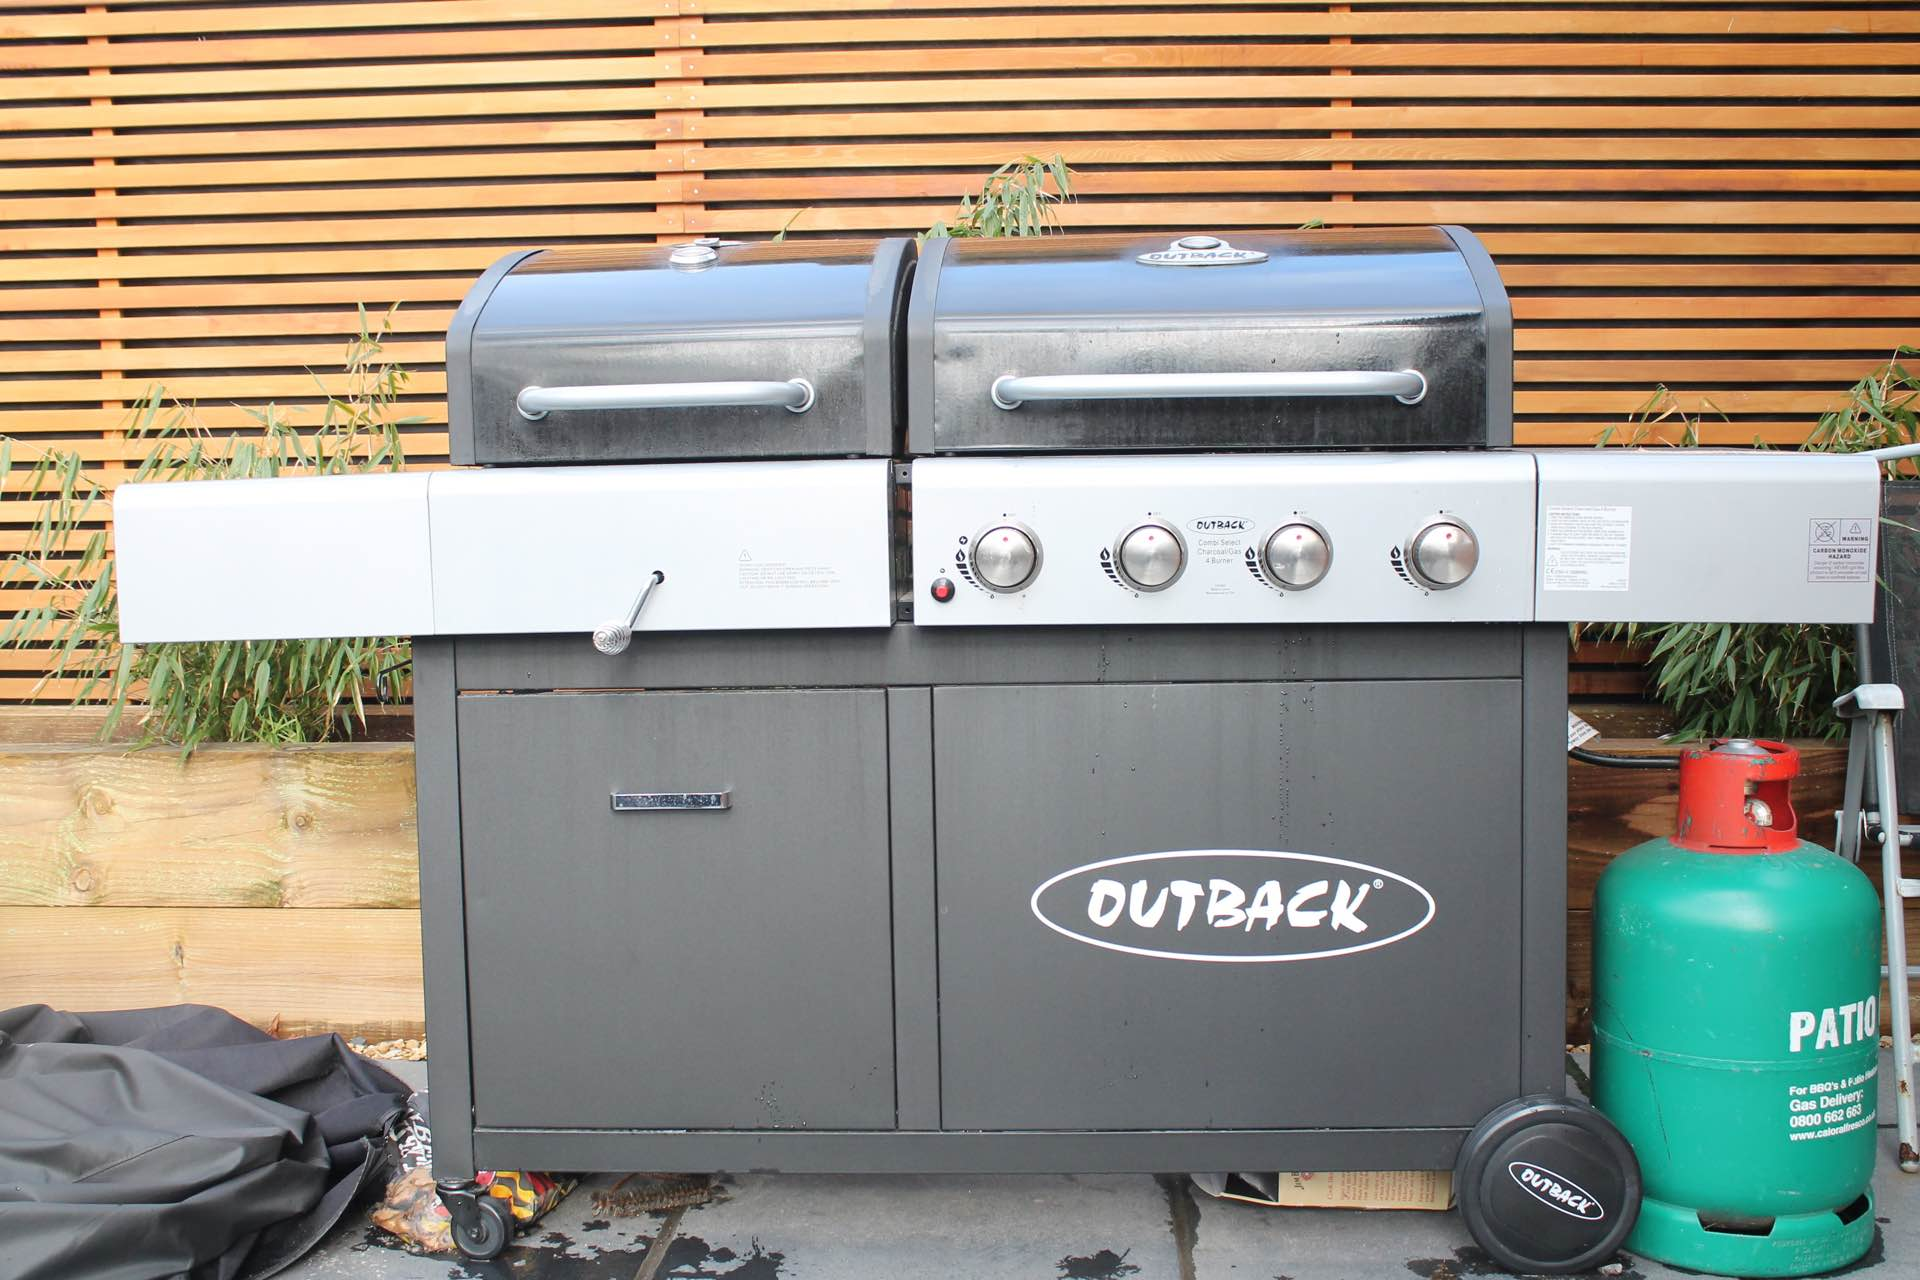 Outback Combi BBQ